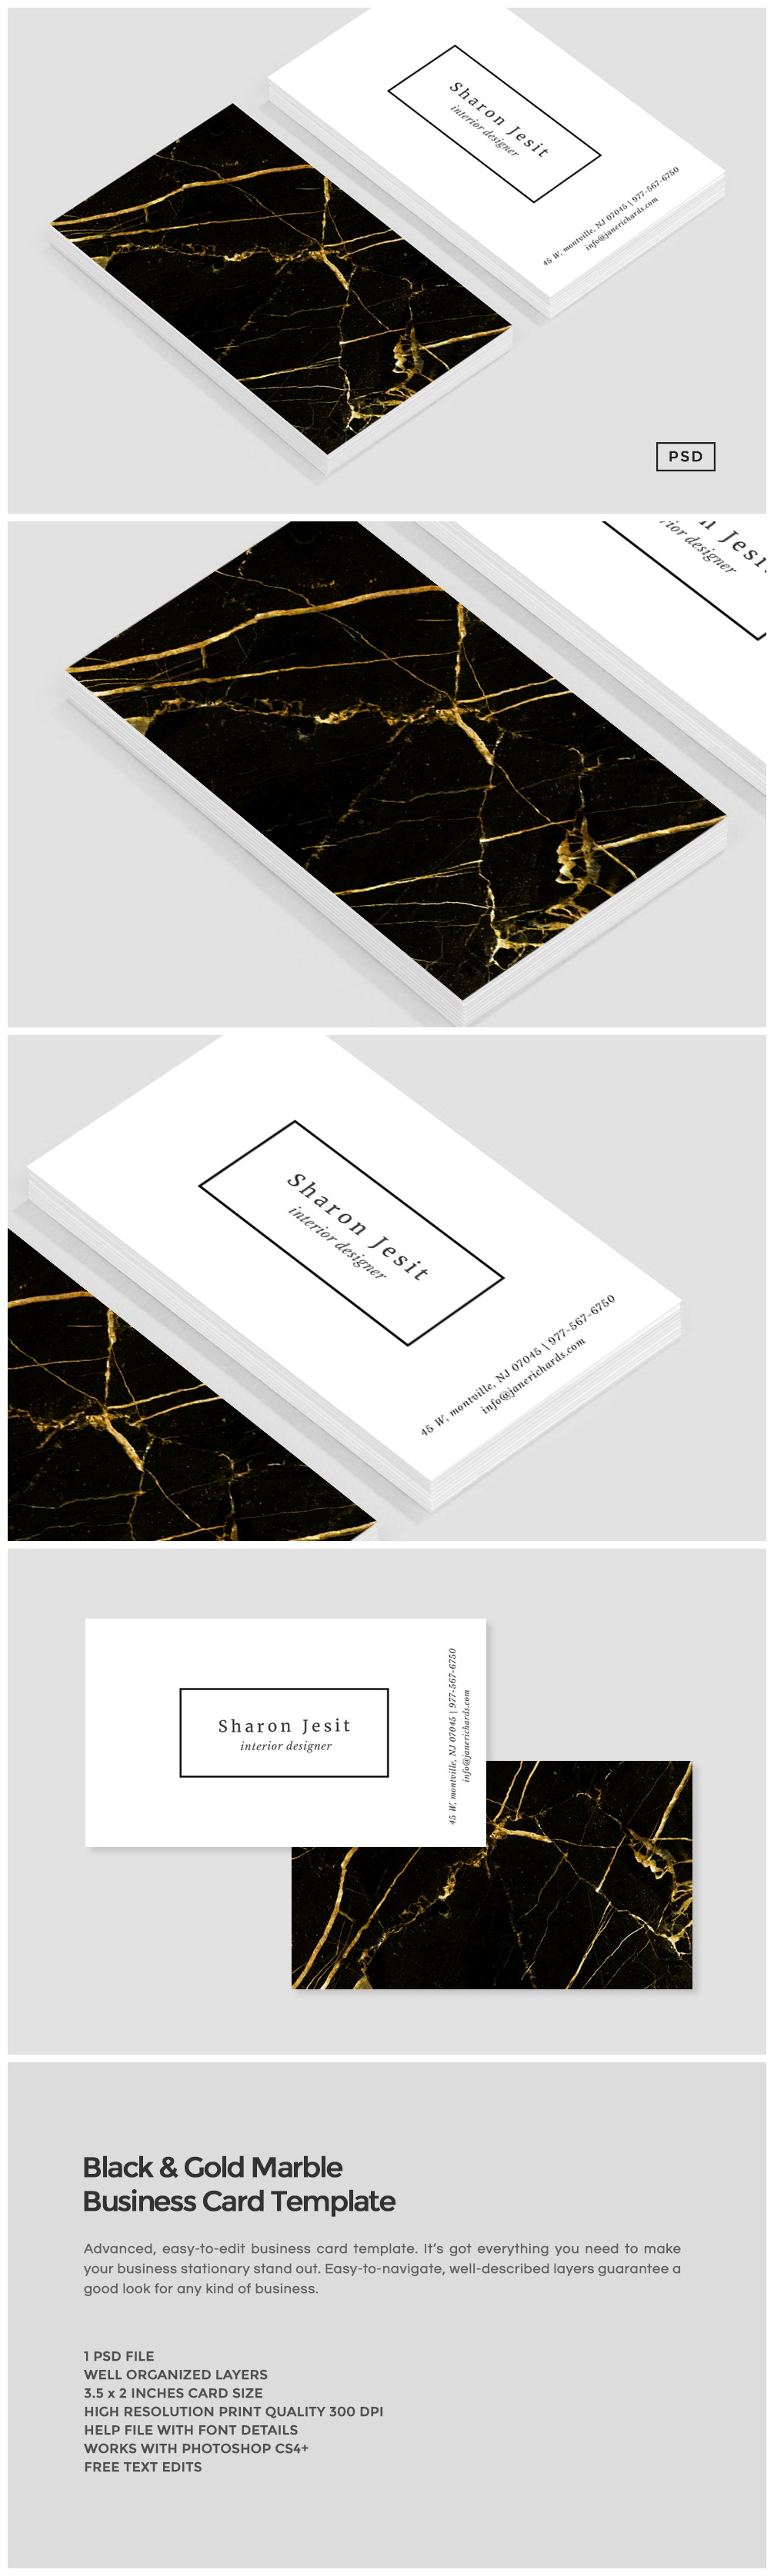 black gold marble business card business card templates on creative market. Black Bedroom Furniture Sets. Home Design Ideas